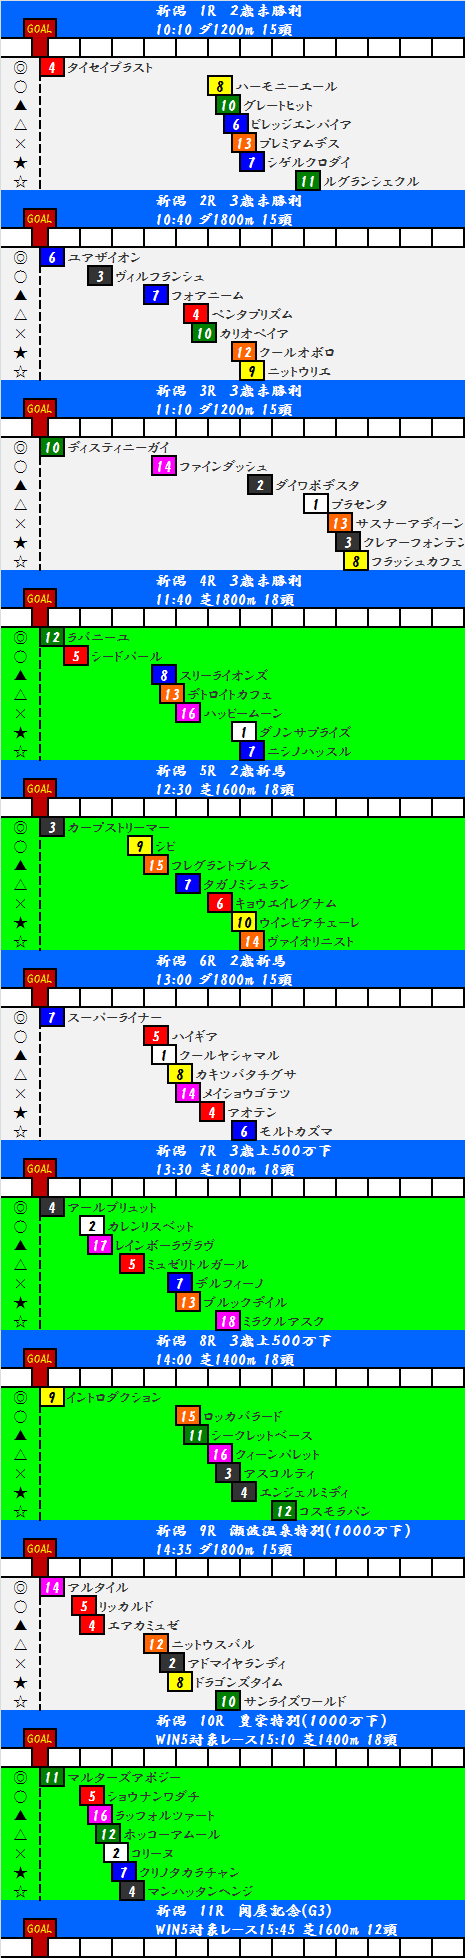 2015081601.png